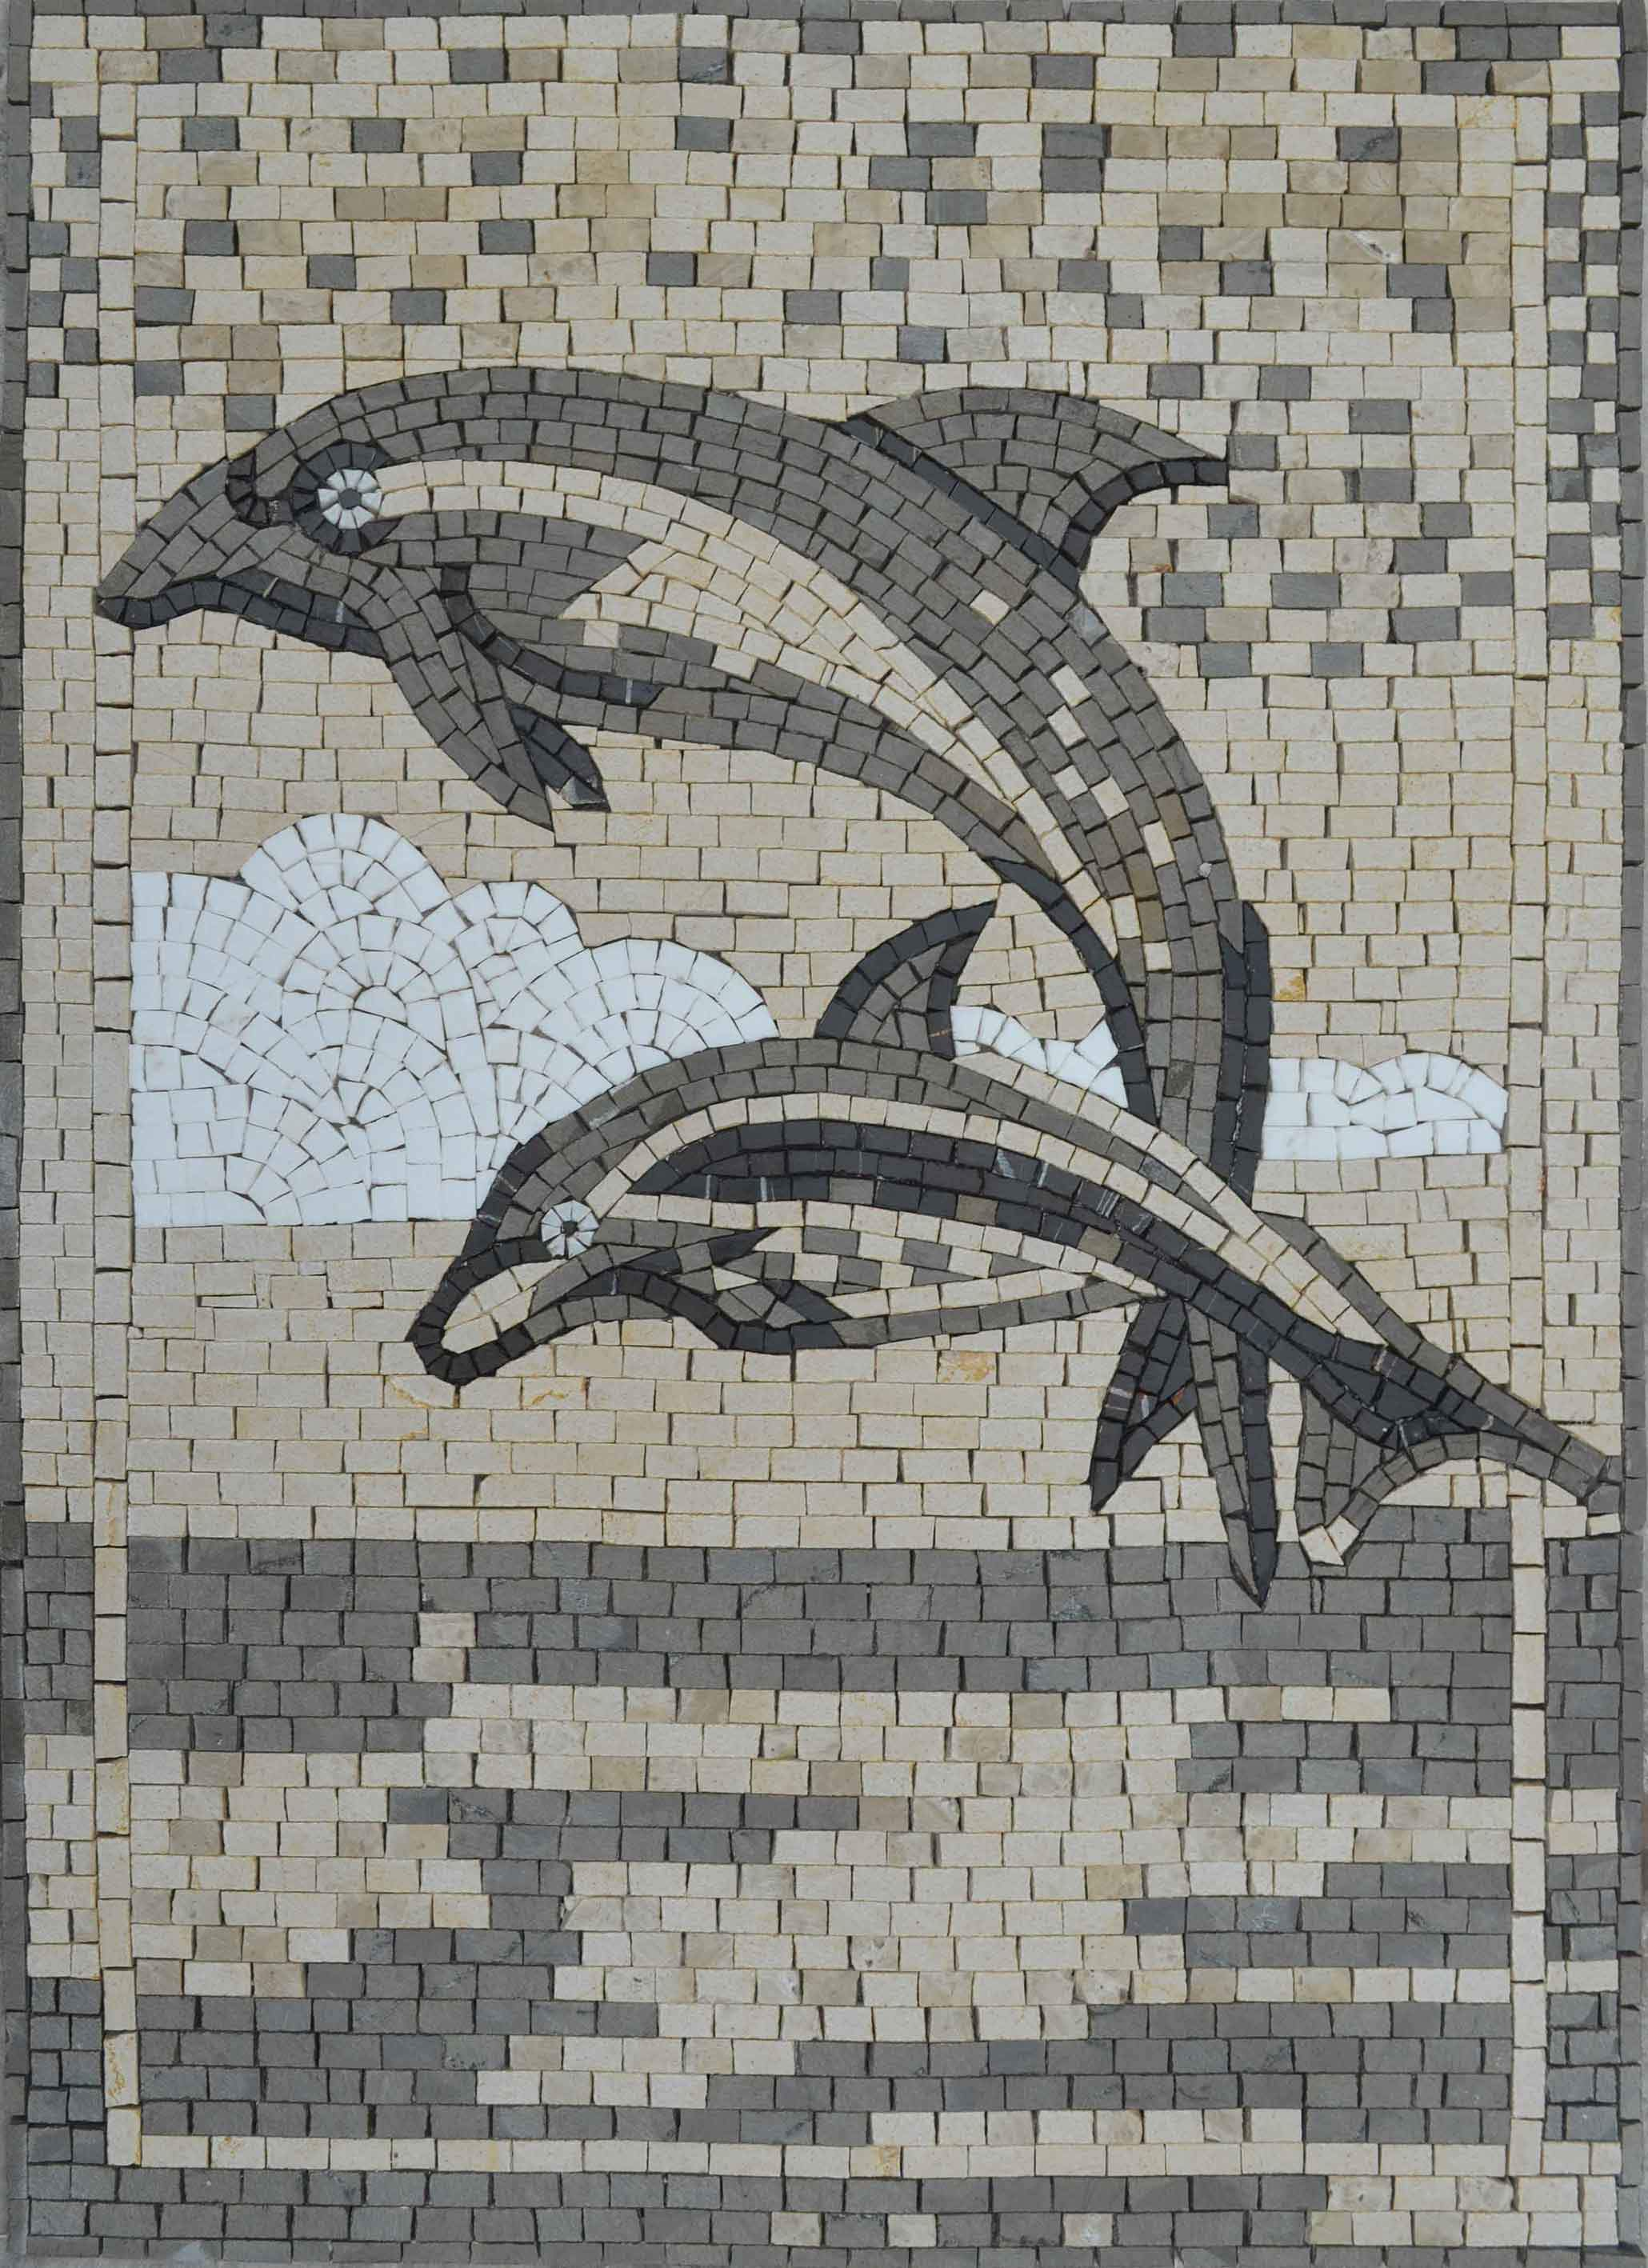 Dolphins Mosaic Artwork